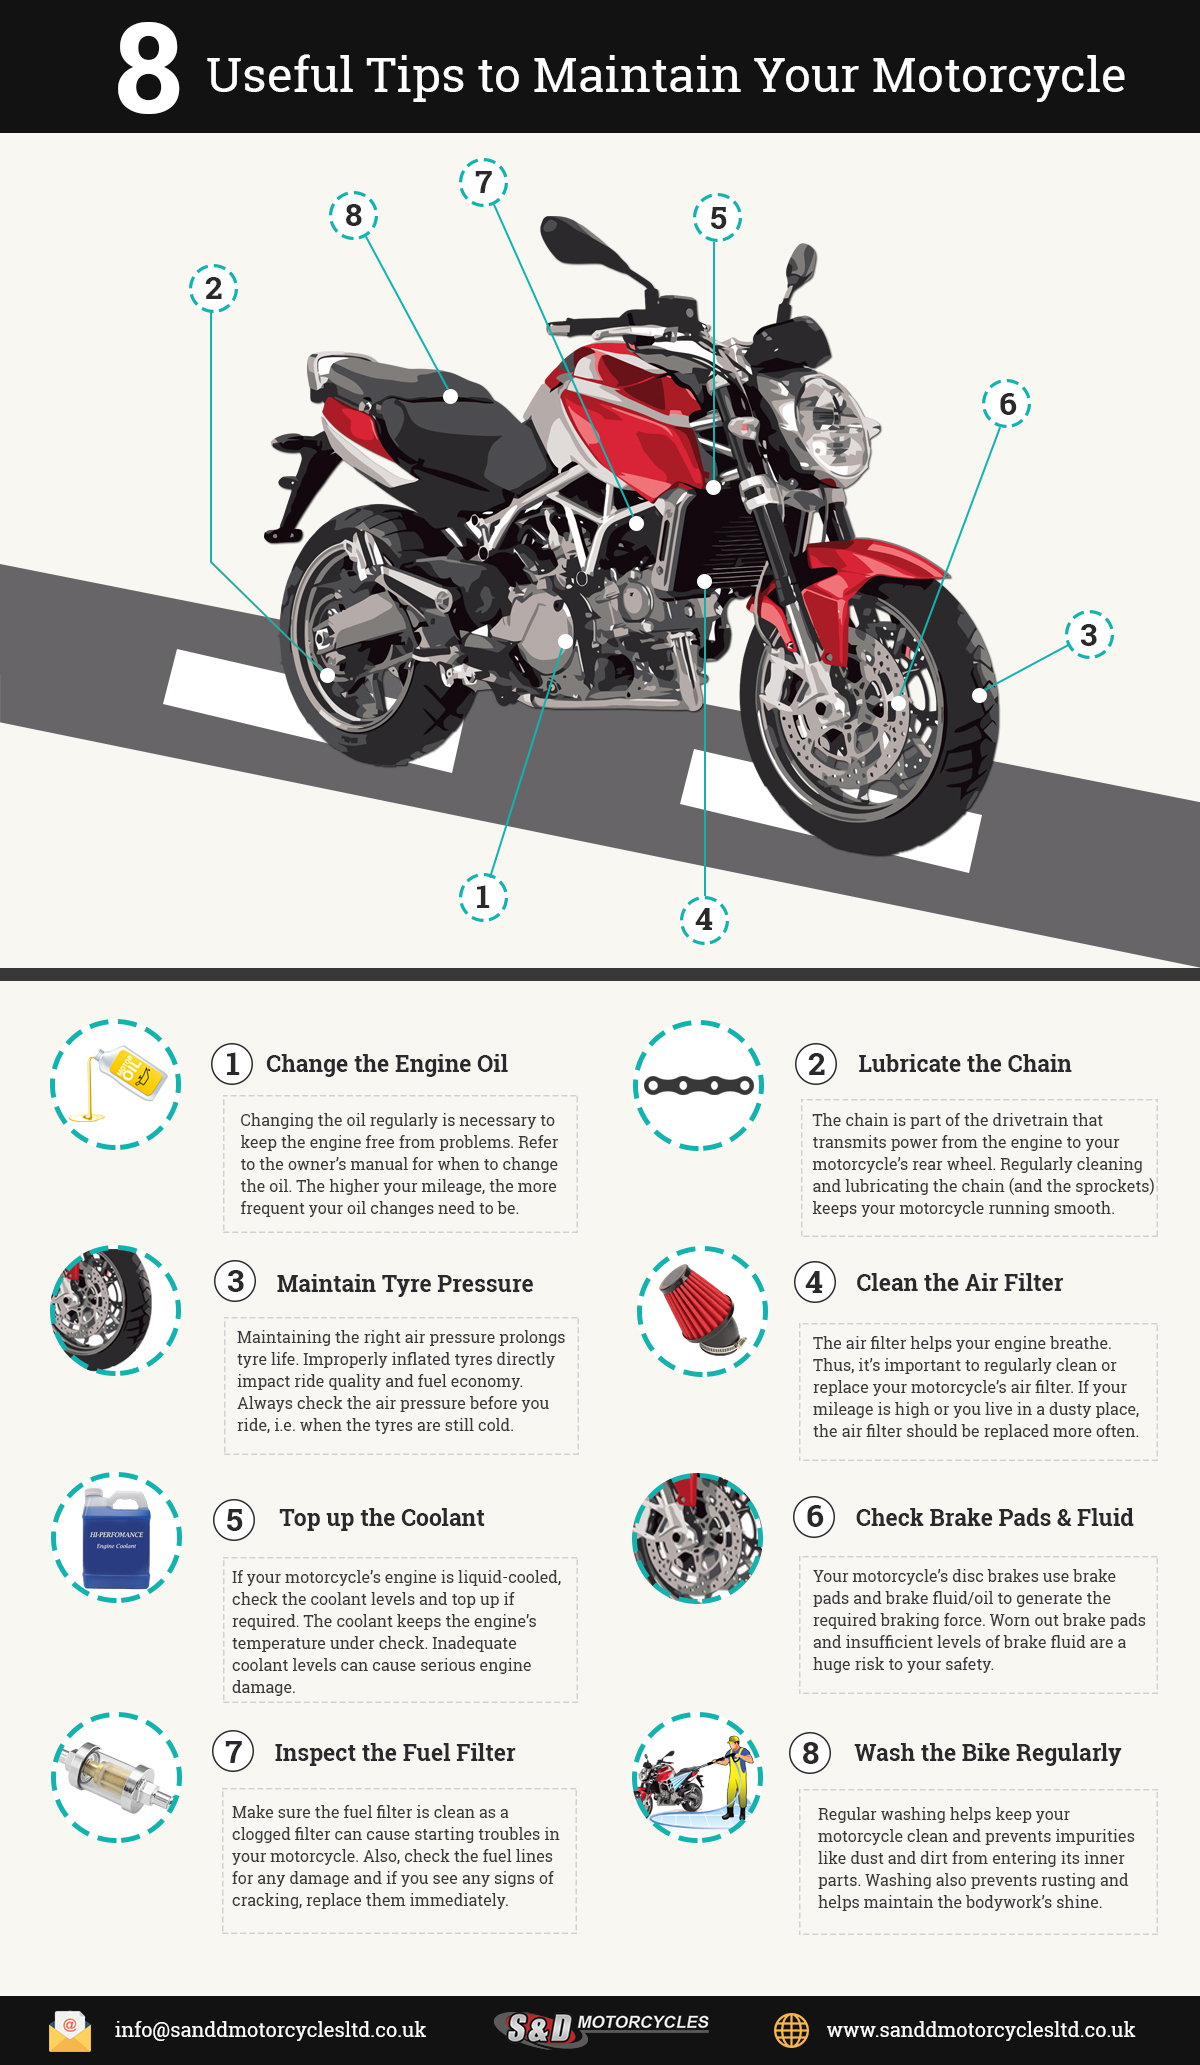 8 useful tips to maintain your motorcycle